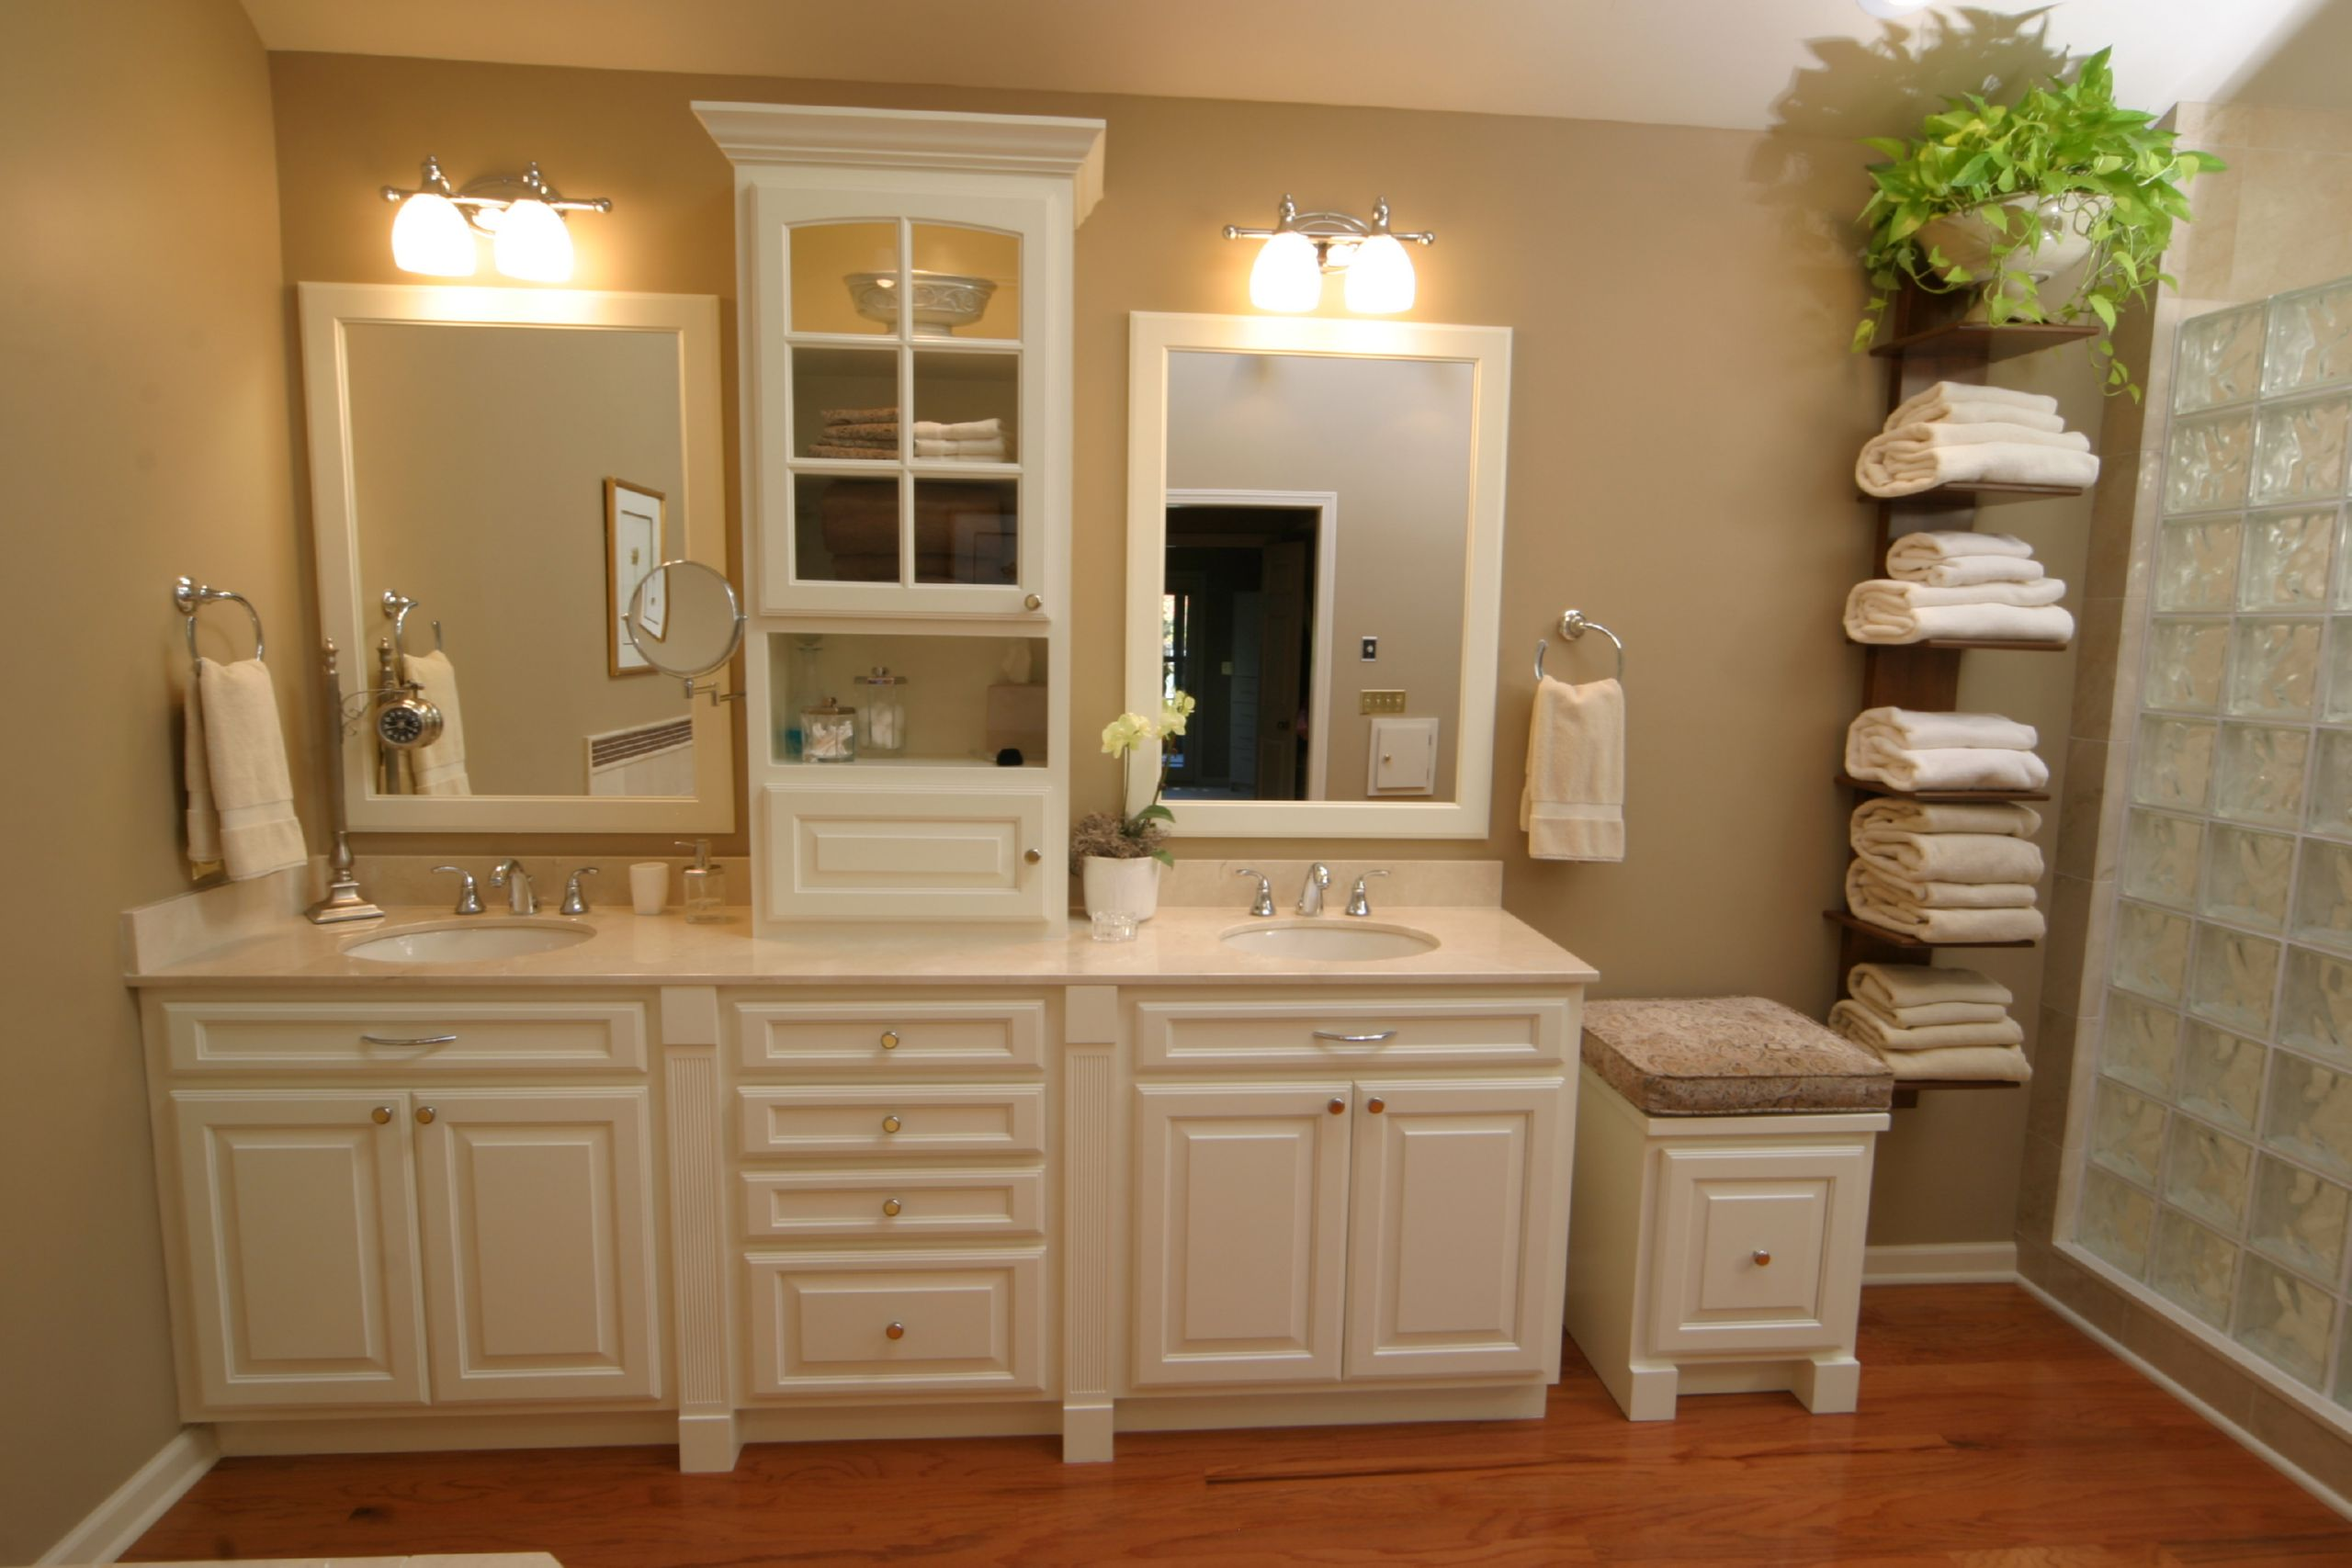 Bathroom remodeling bath remodel contractor - Remodel bathroom designs ...